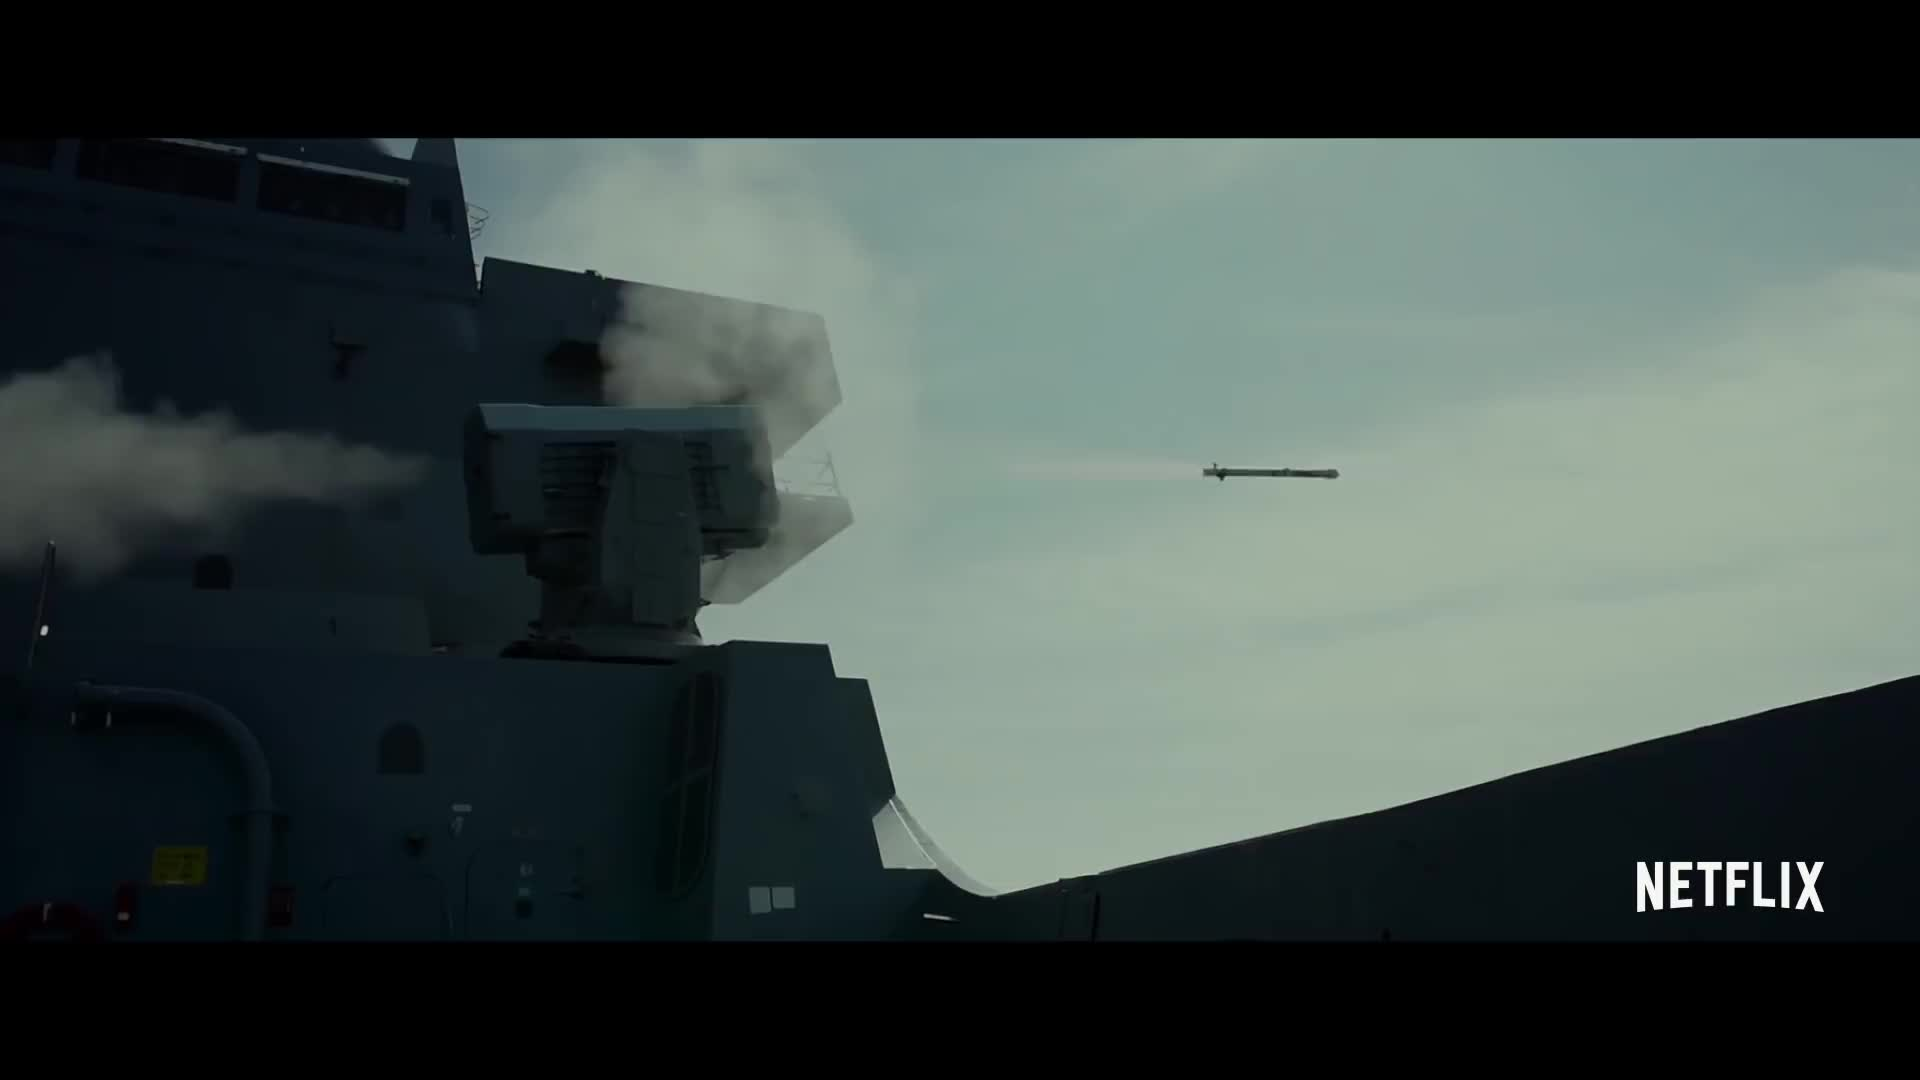 Sci Fi Movies 2018 Gifs Search | Search & Share on Homdor